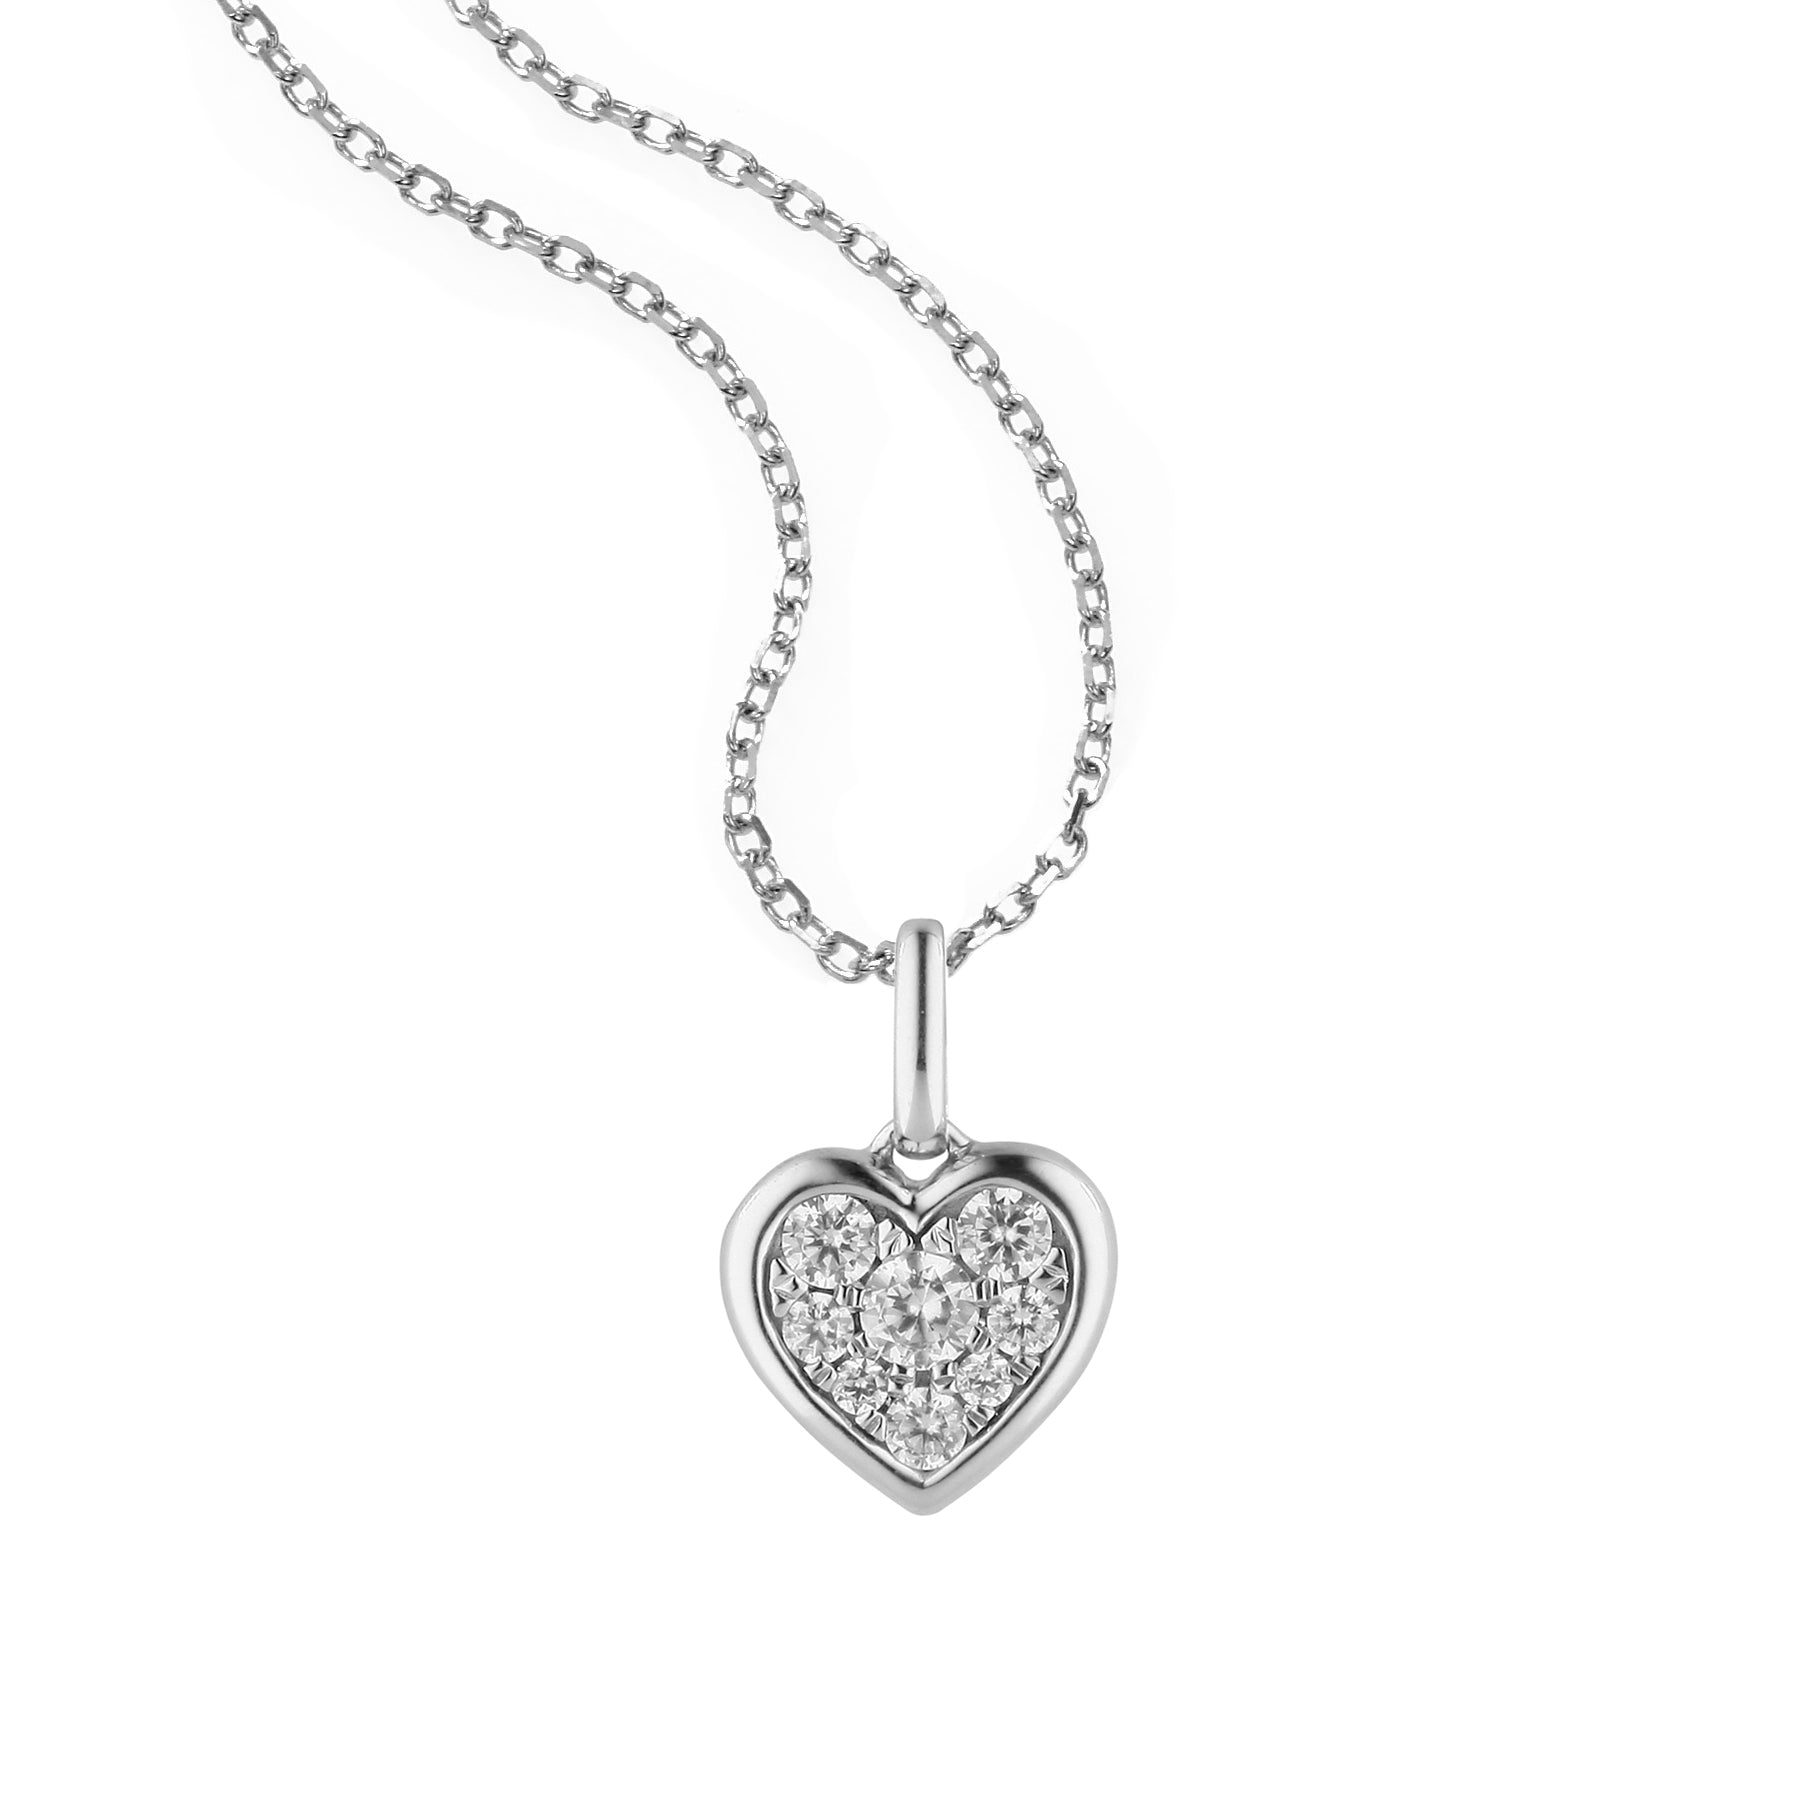 Framed Pavé Diamond Heart Pendant, 14K White Gold